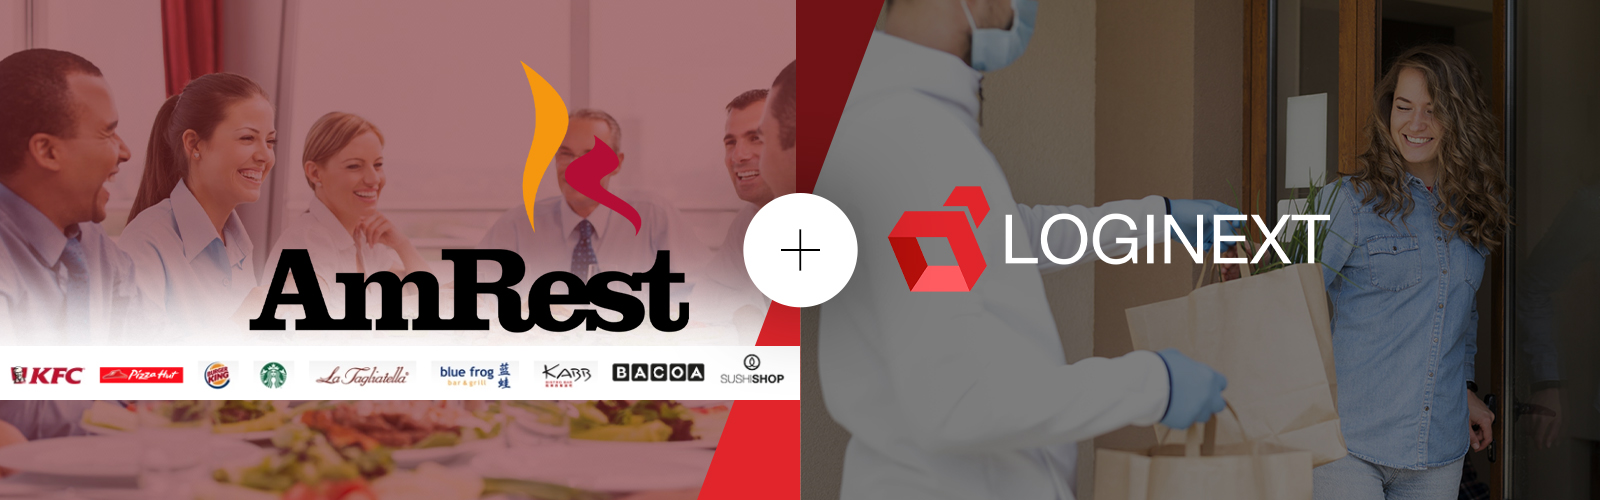 LogiNext AmRest Partnership